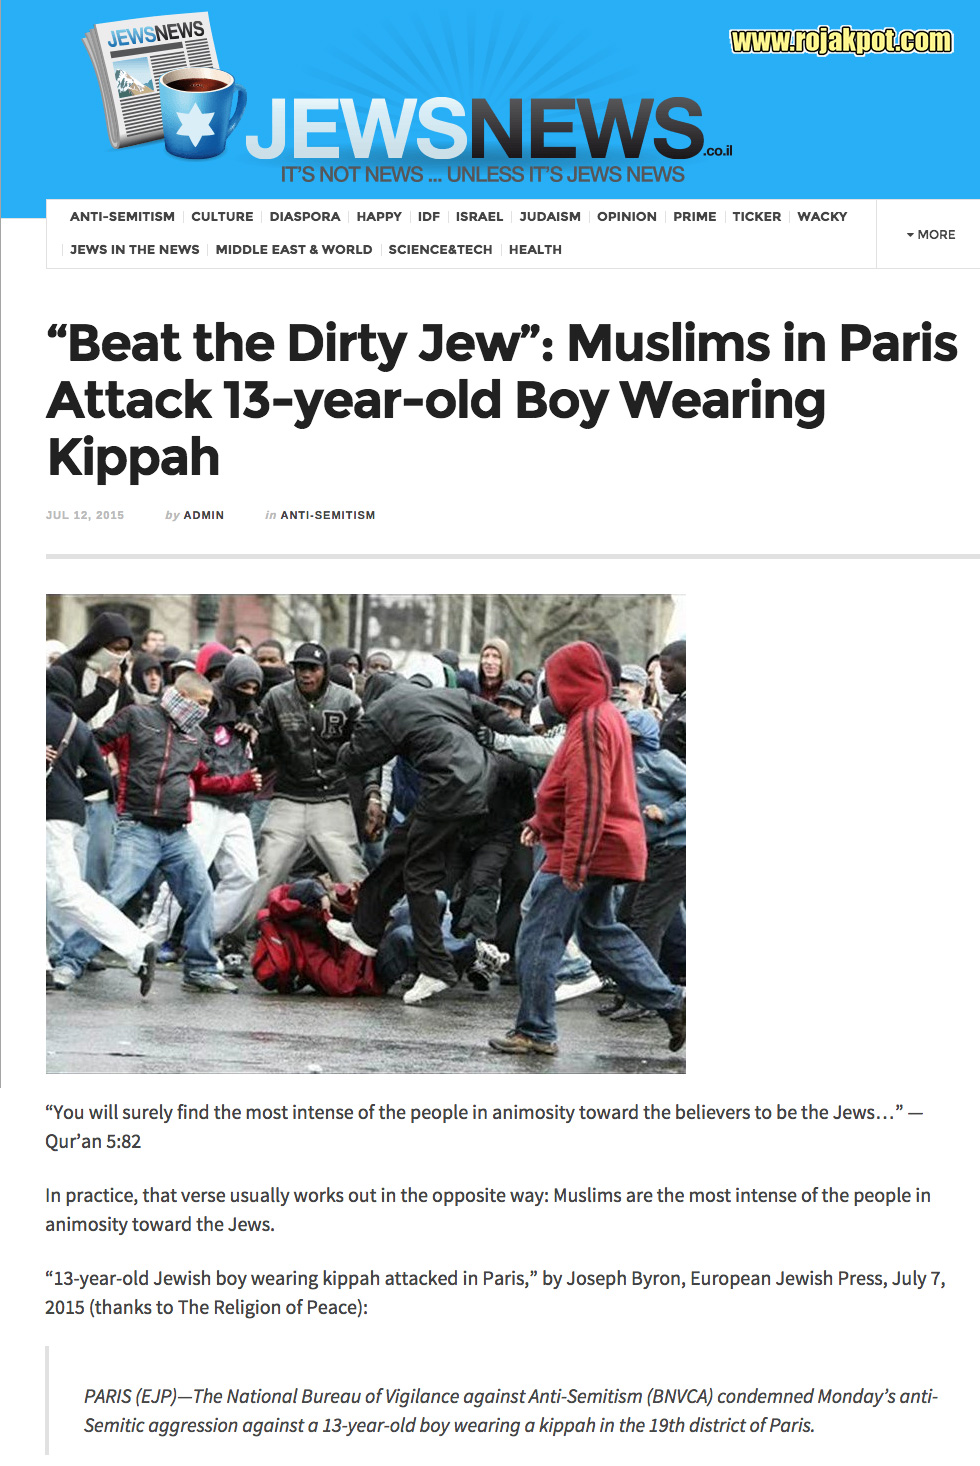 Muslims in Paris Attack 13-year-old Boy Wearing Kippah